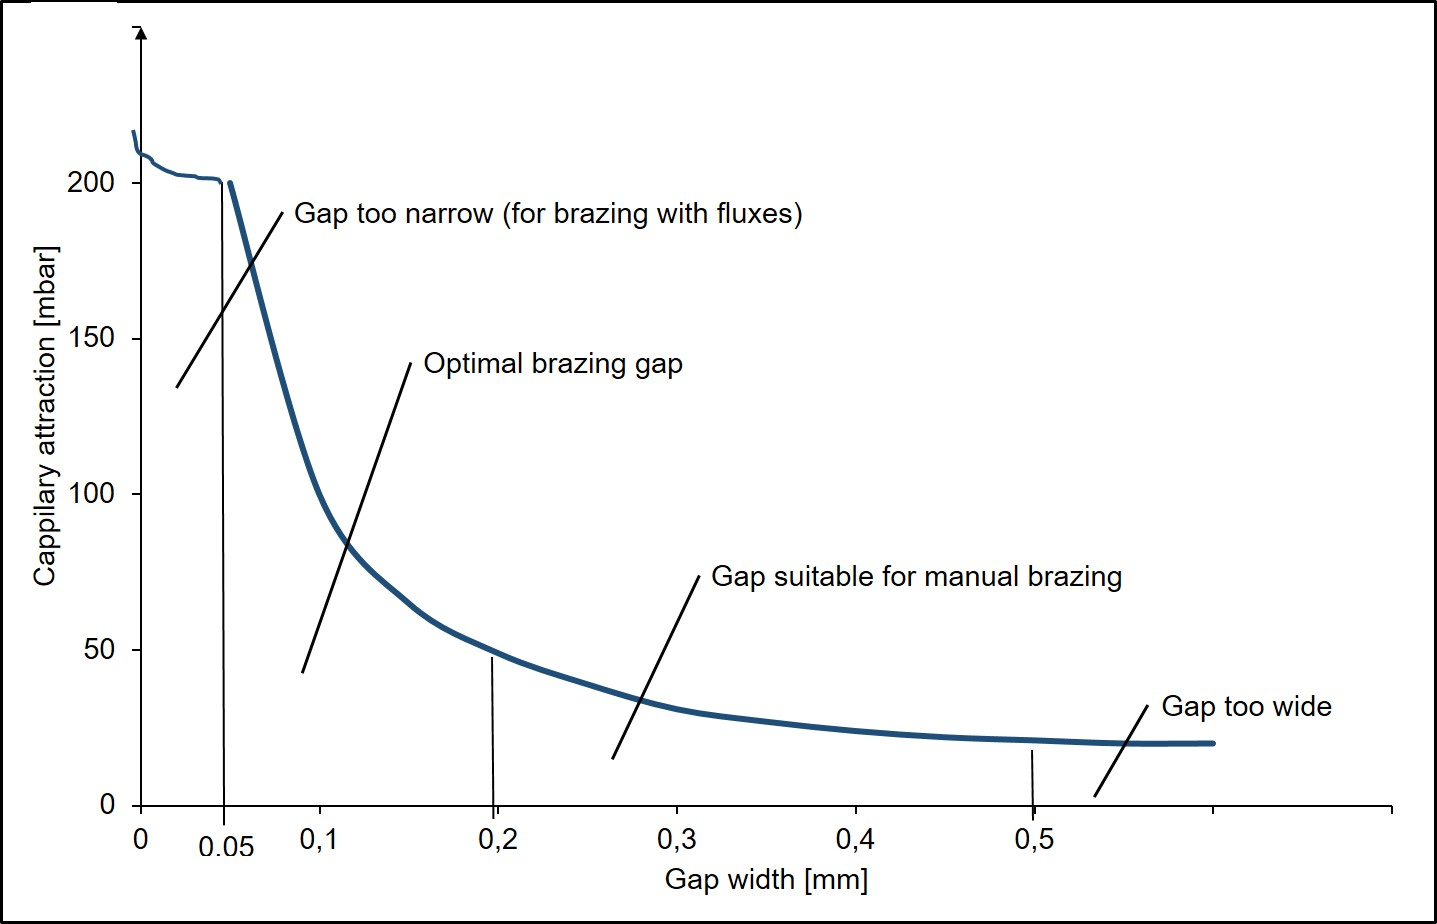 Image 4: Capillary filling pressure in dependency on the gap width